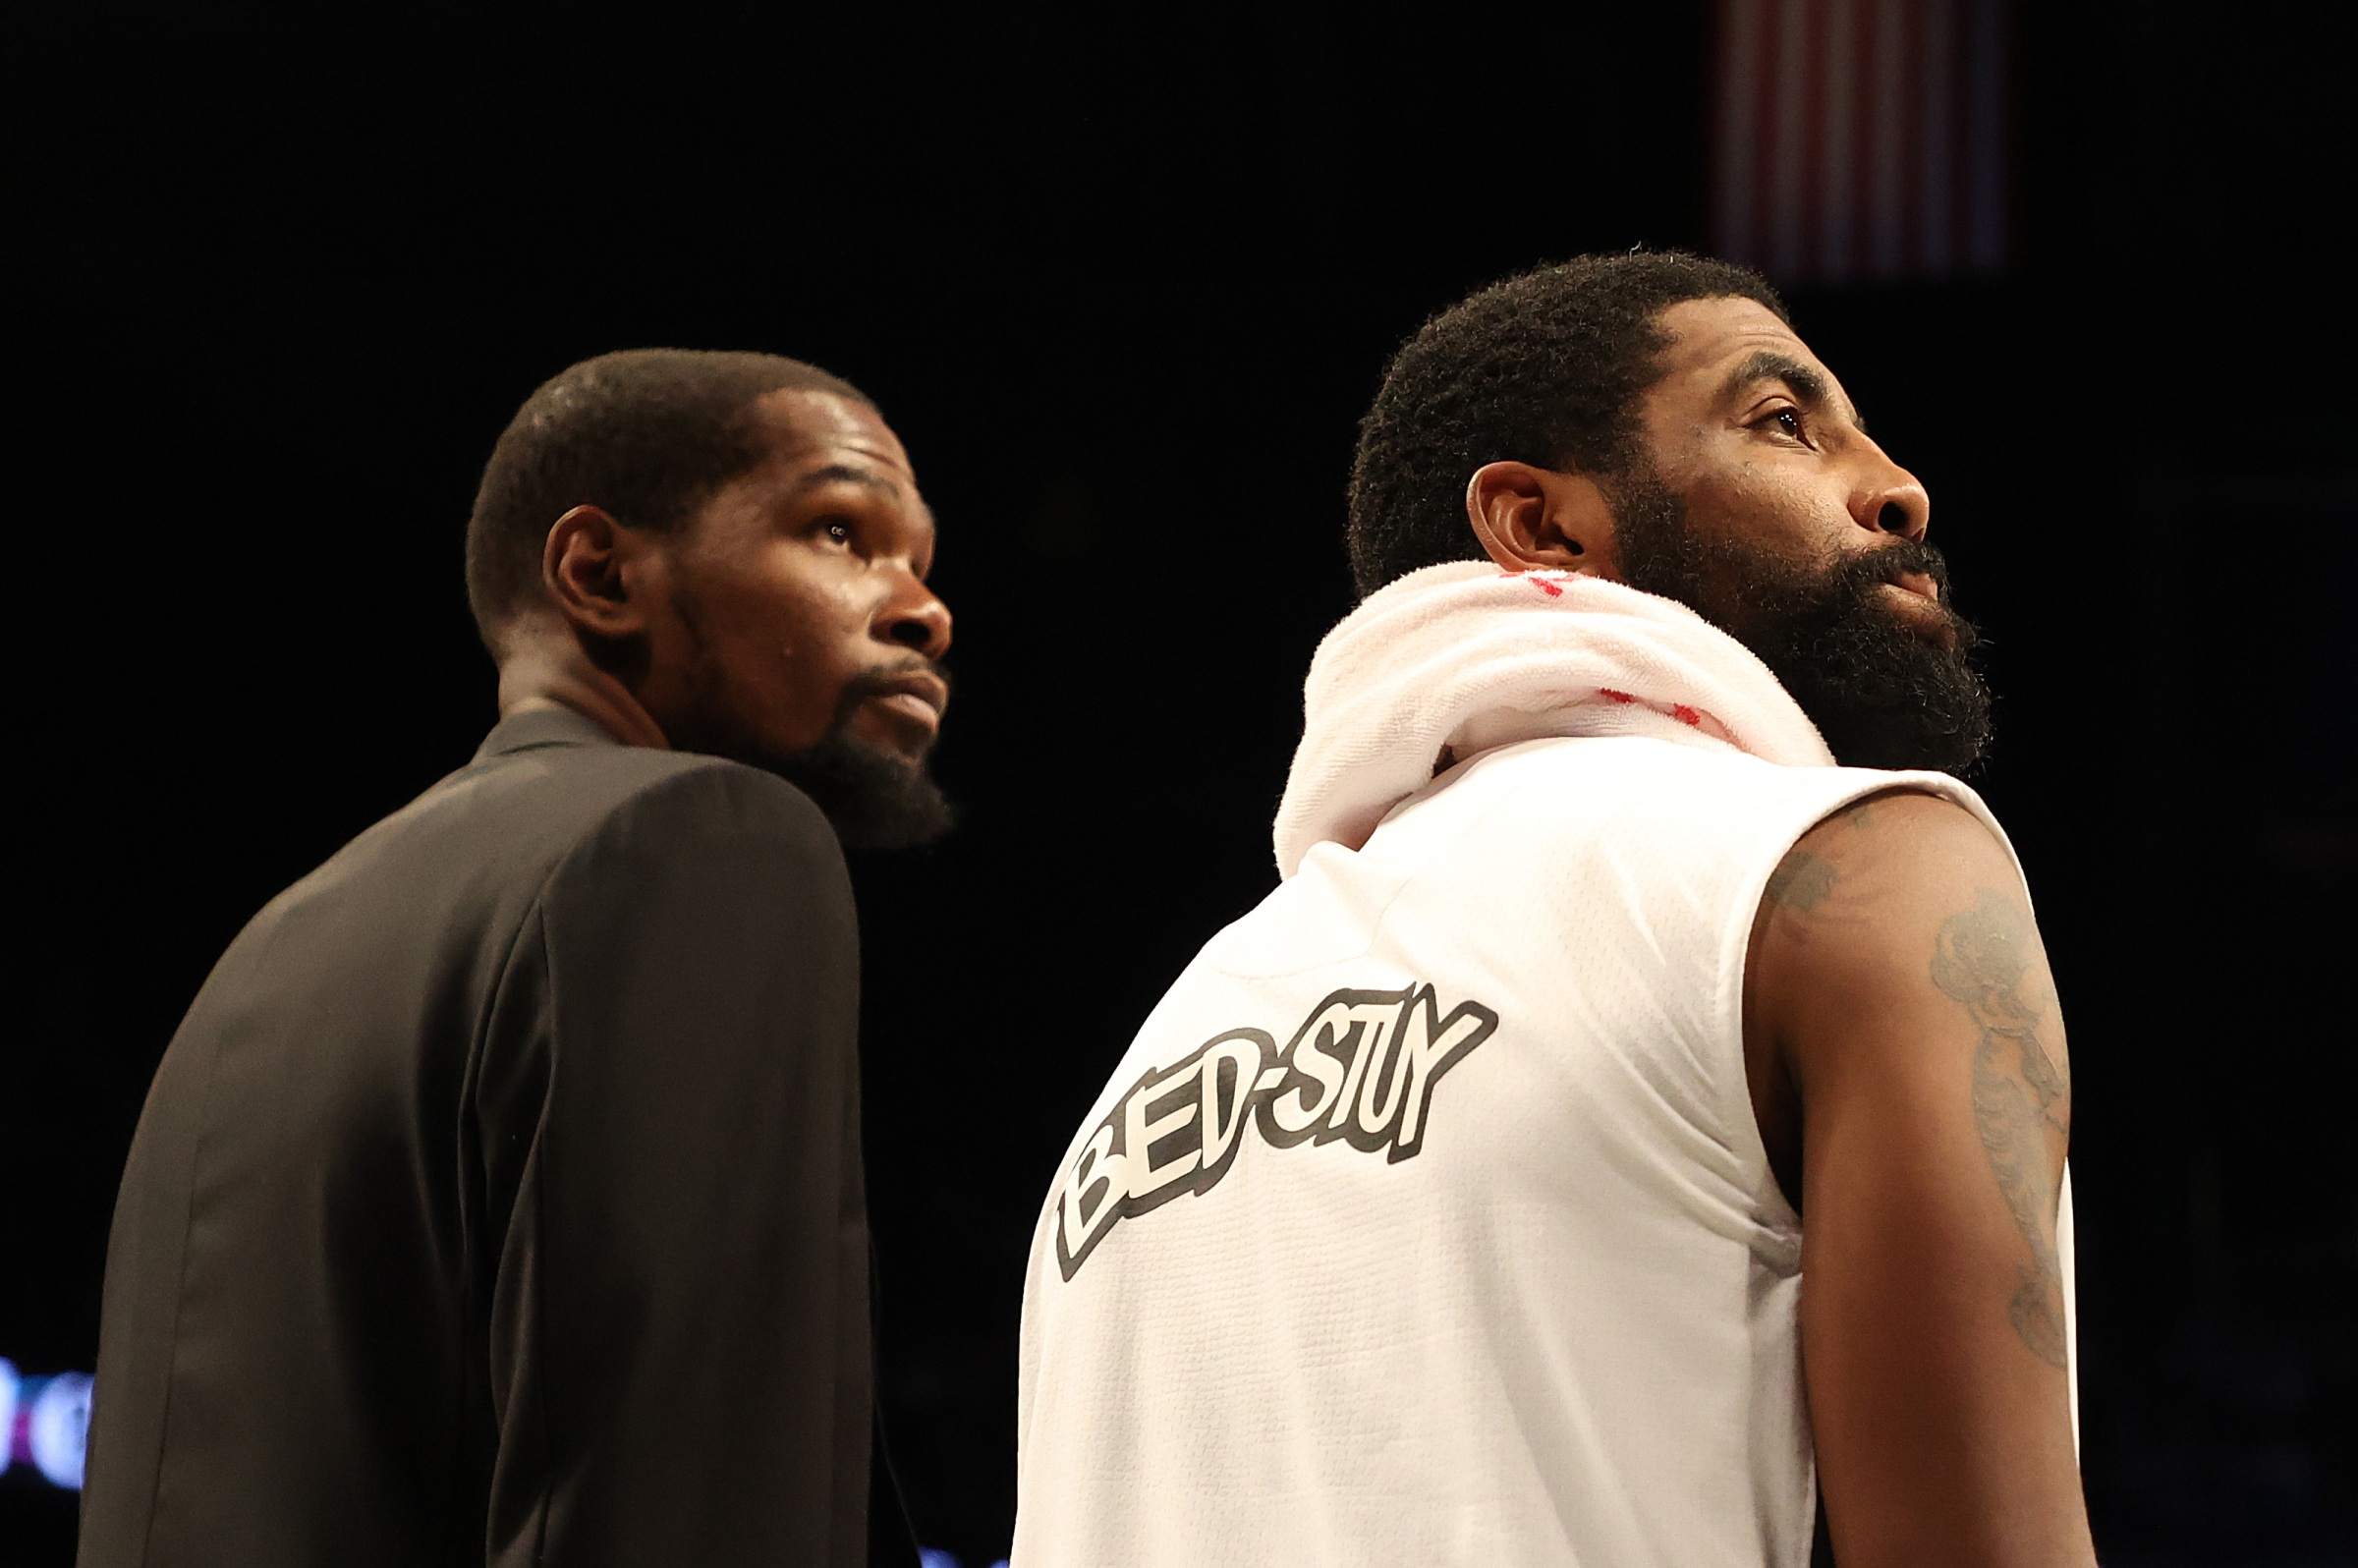 Kevin Durant and Kyrie Irving look in the same direction.